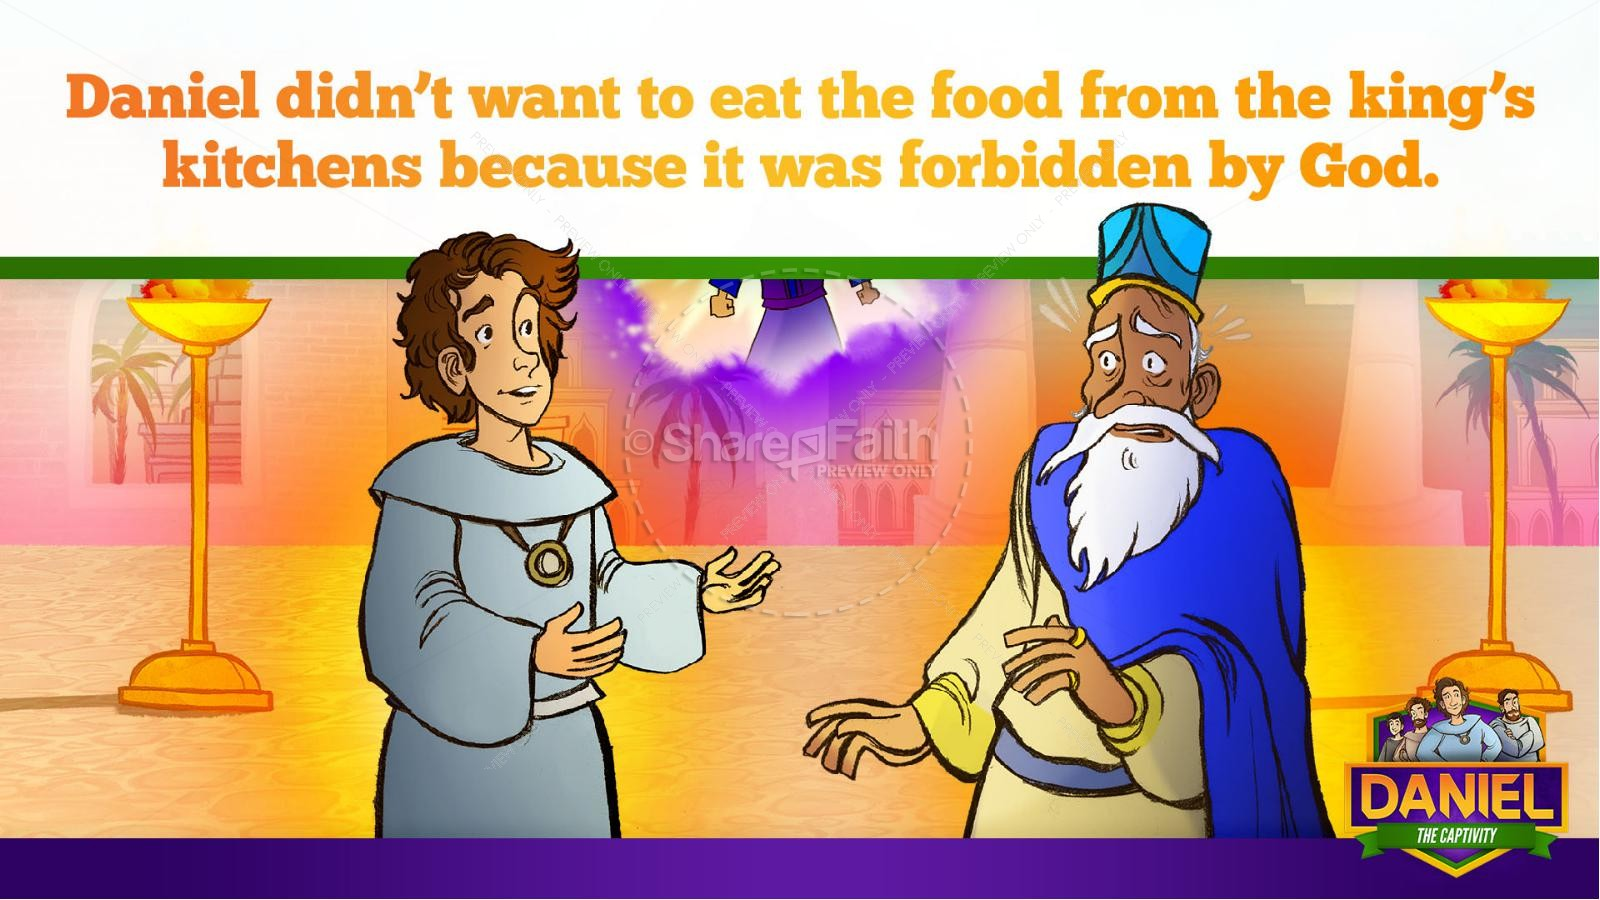 Daniel 1 The Captivity Kids Bible Story | slide 24